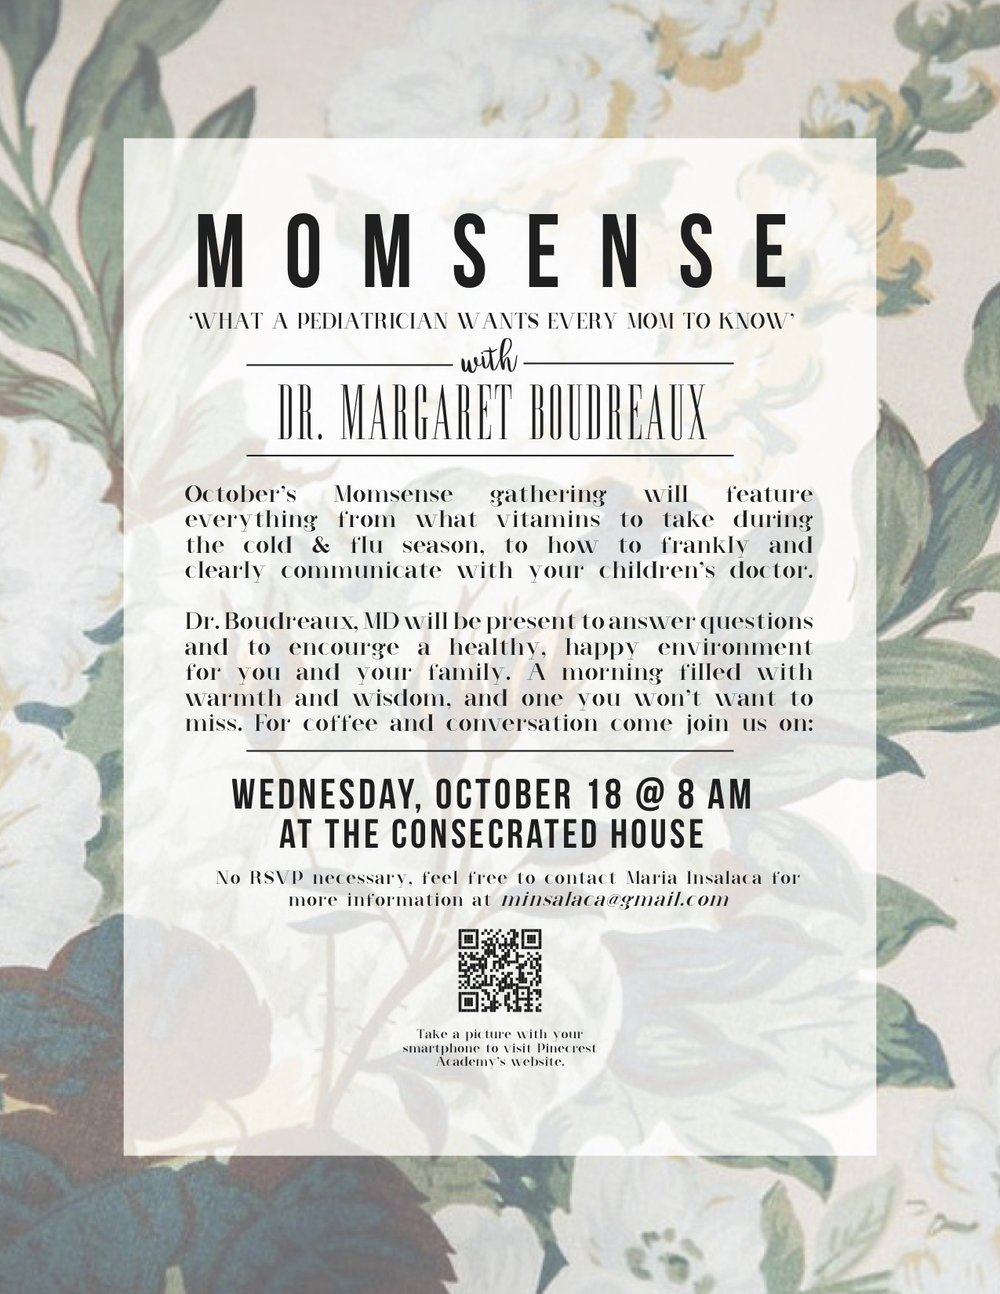 MOMSENSE full-page  - [CLICK TO ZOOM] Flyer for Momsense Event at Pinecrest Academy. Featuring a QR code linking to pinecrestacademy.org